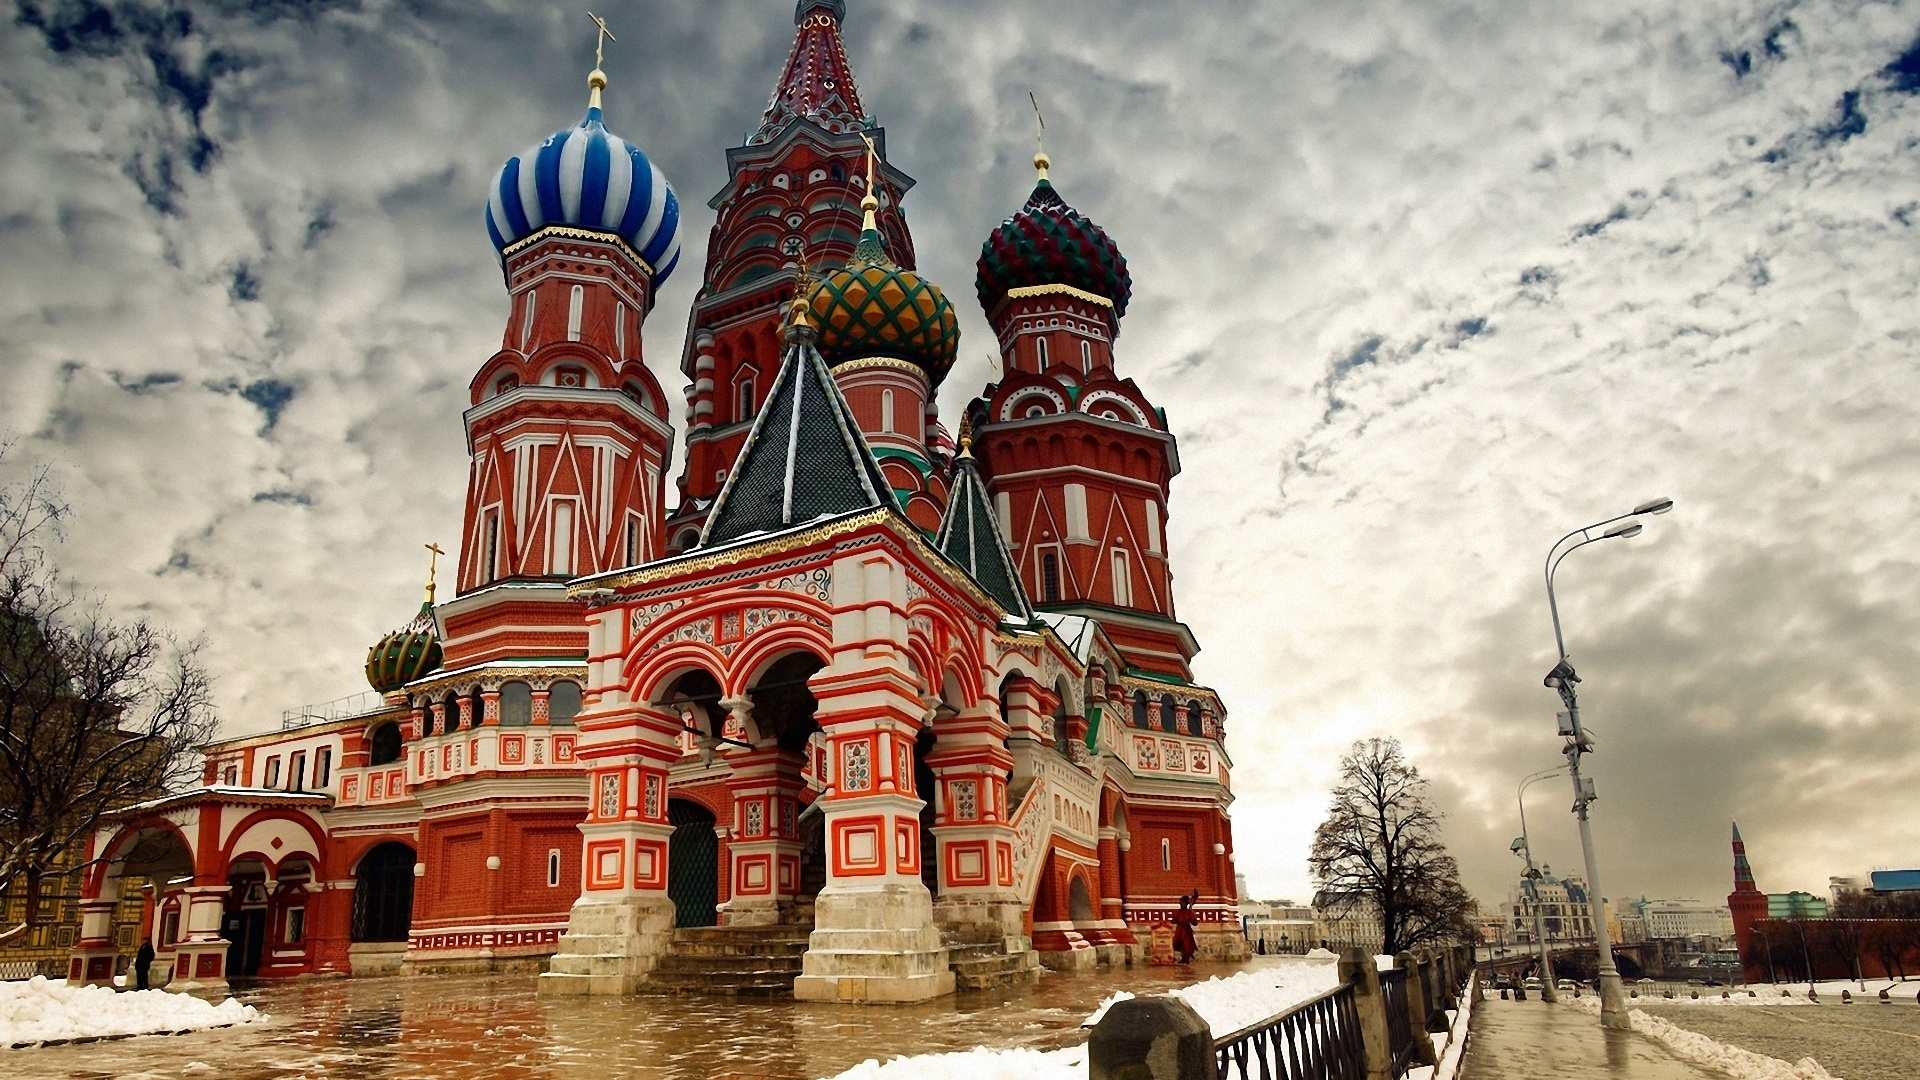 Wallpaper Moscow snow winter 1920x1200 HD Picture, Image